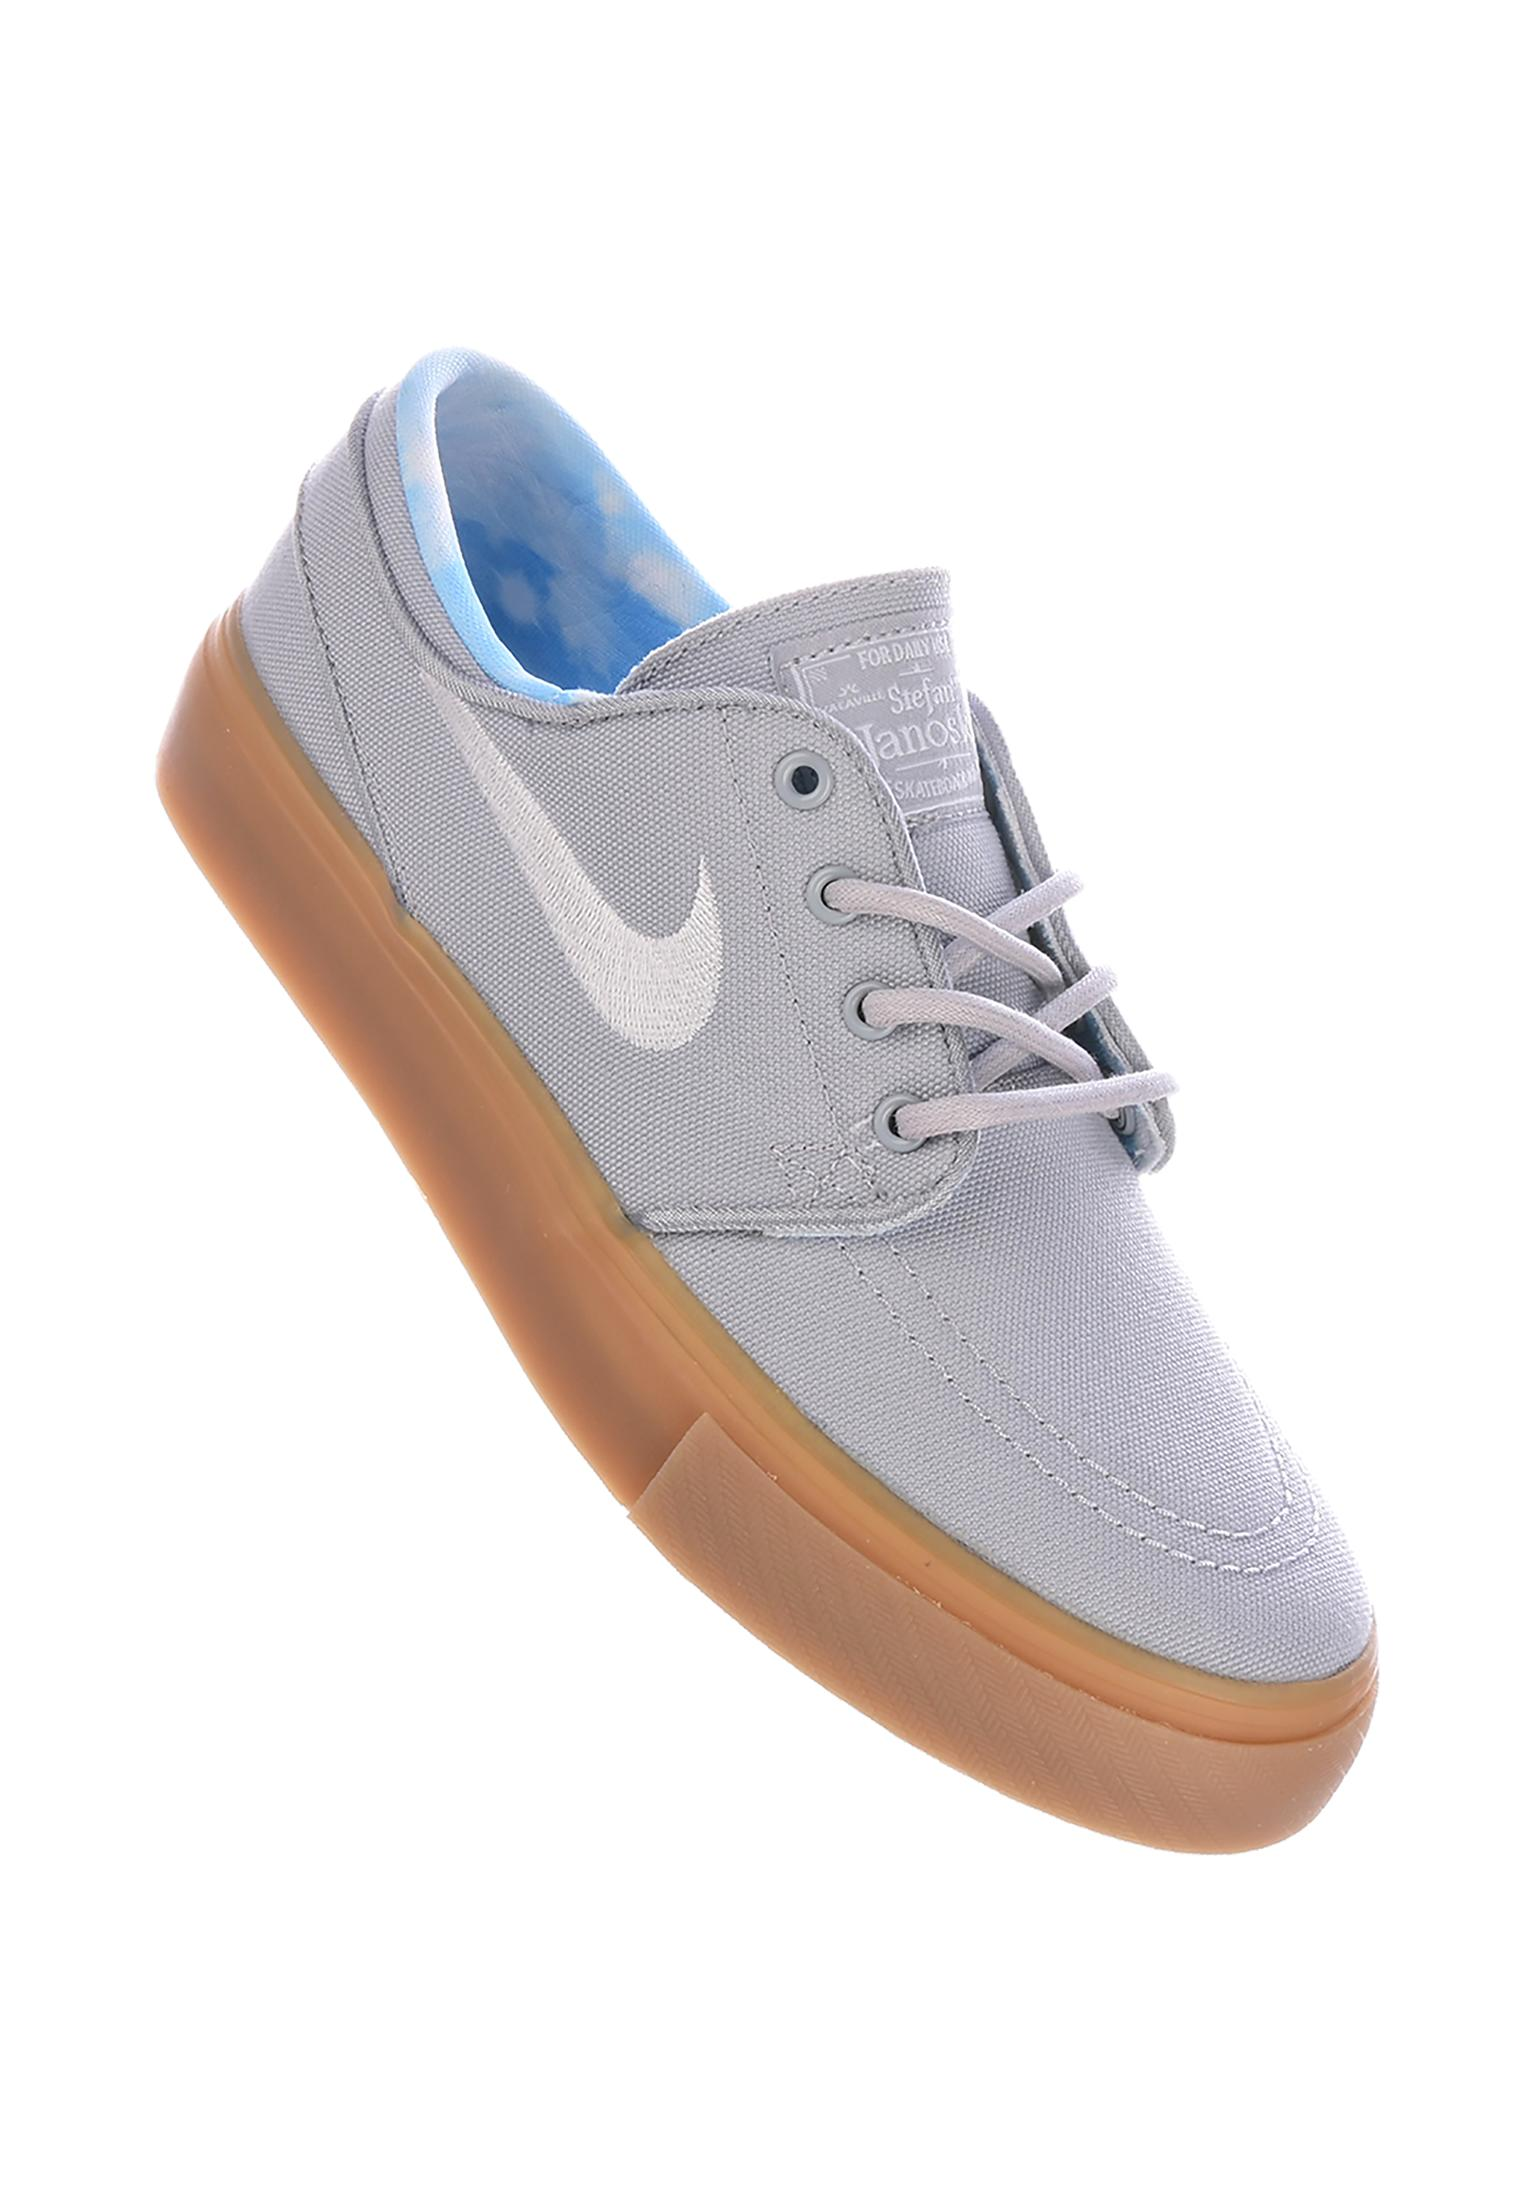 new concept 24a40 291bd Zoom Stefan Janoski Canvas GS Nike SB All Shoes in wolfgrey-white-gum for  Kids   Titus